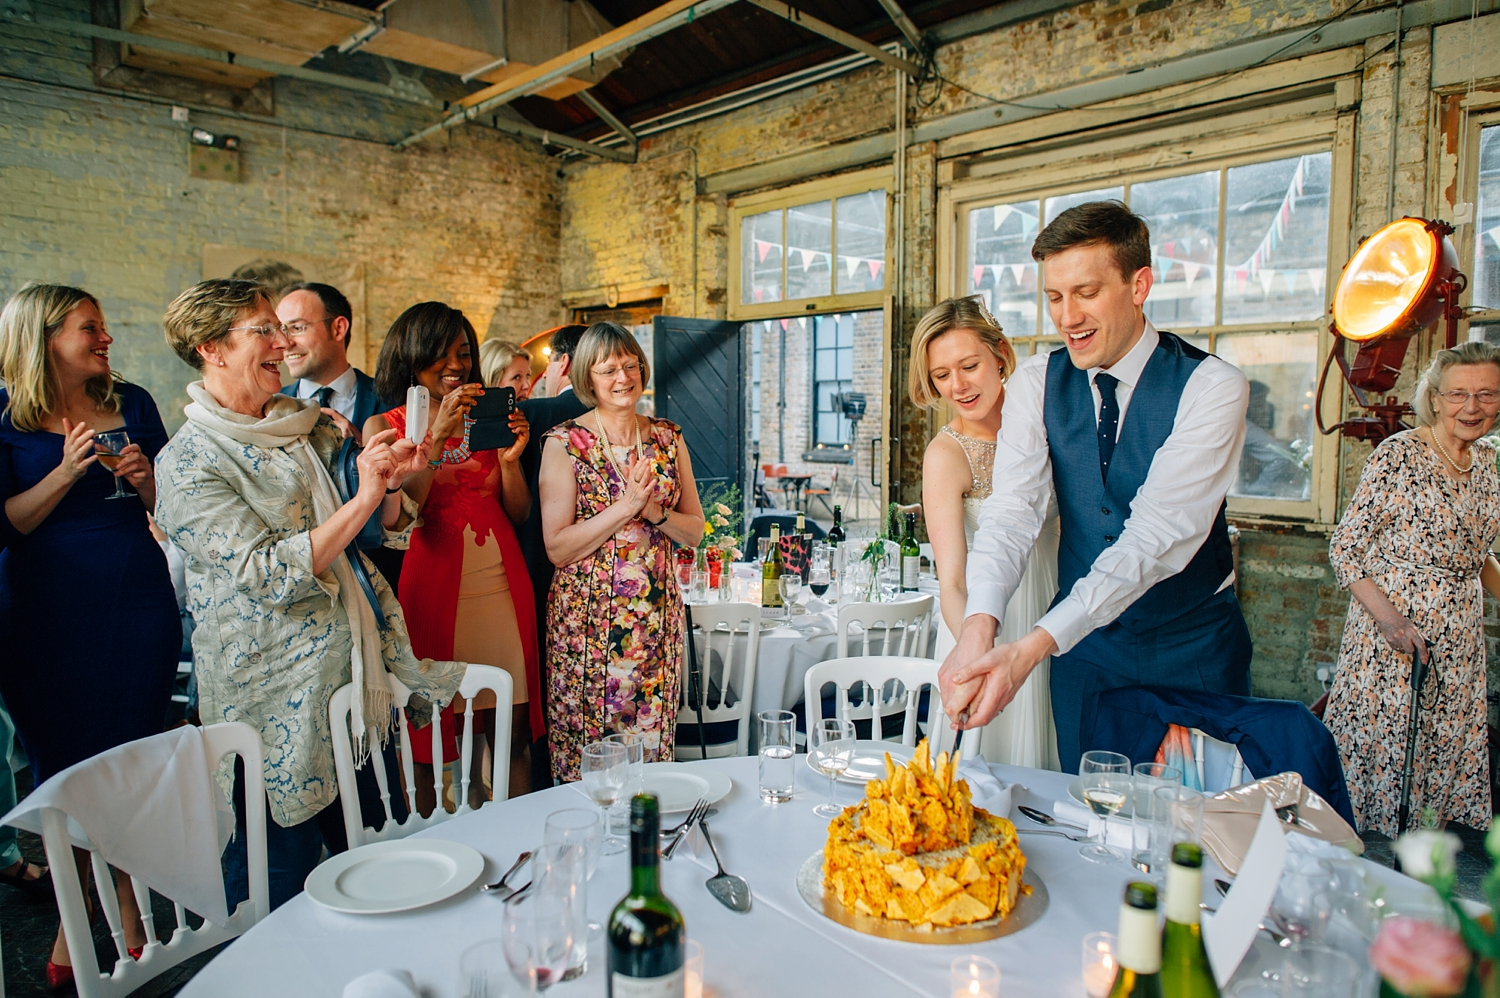 0192-lisa-devine-alternative-wedding-photography-london-hackney-dalston-london-photography-townhall-hotel.JPG